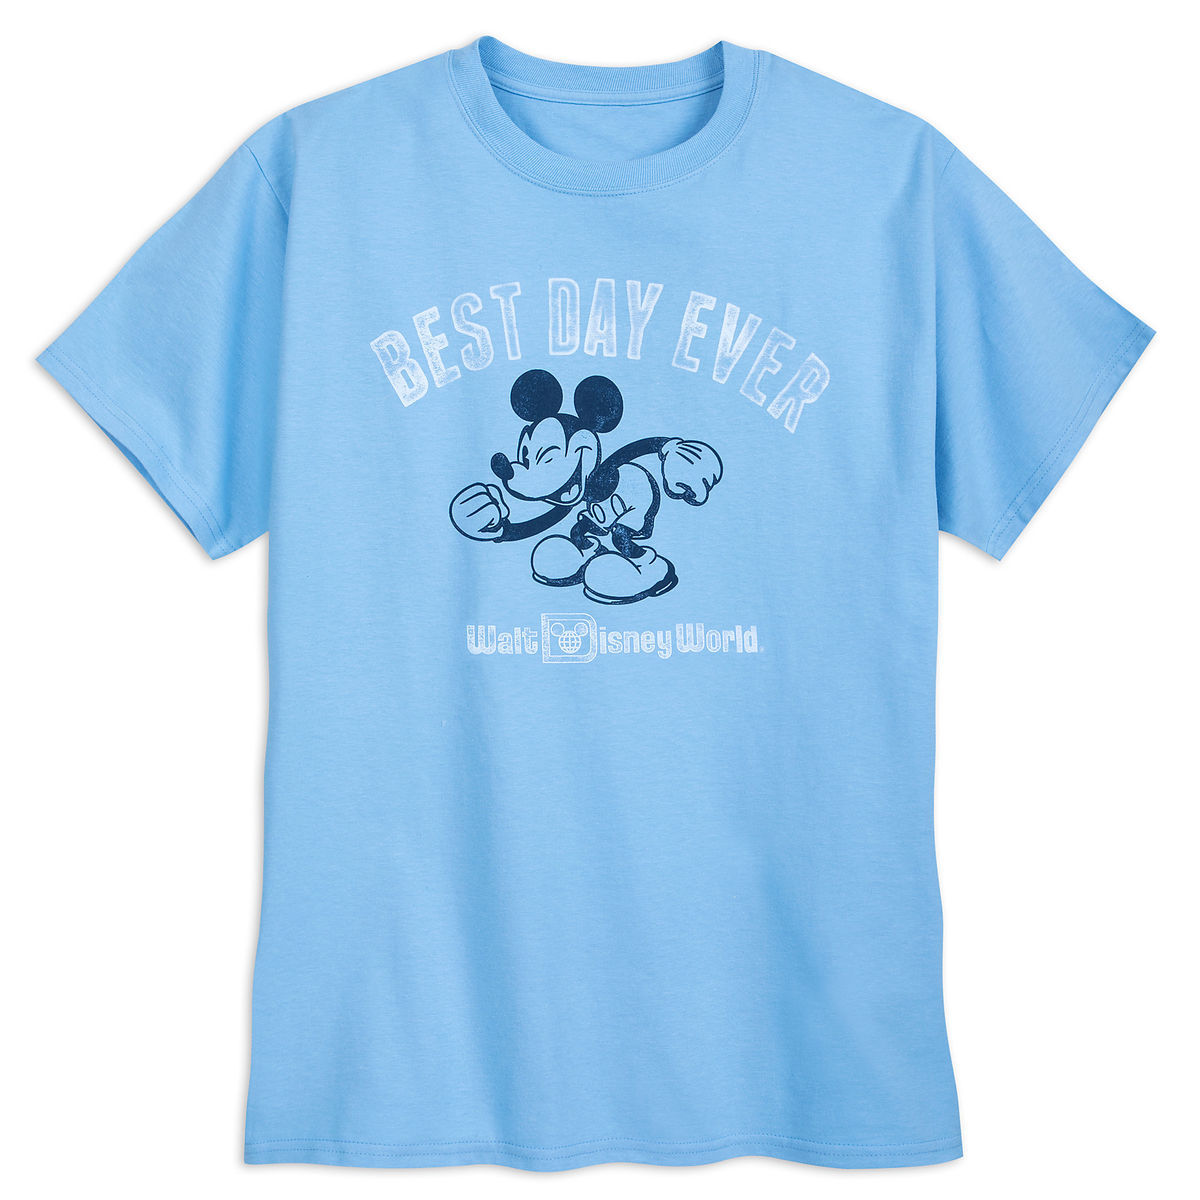 Disney ADULT Shirt - Mickey Mouse - Best Day Ever - Disney World